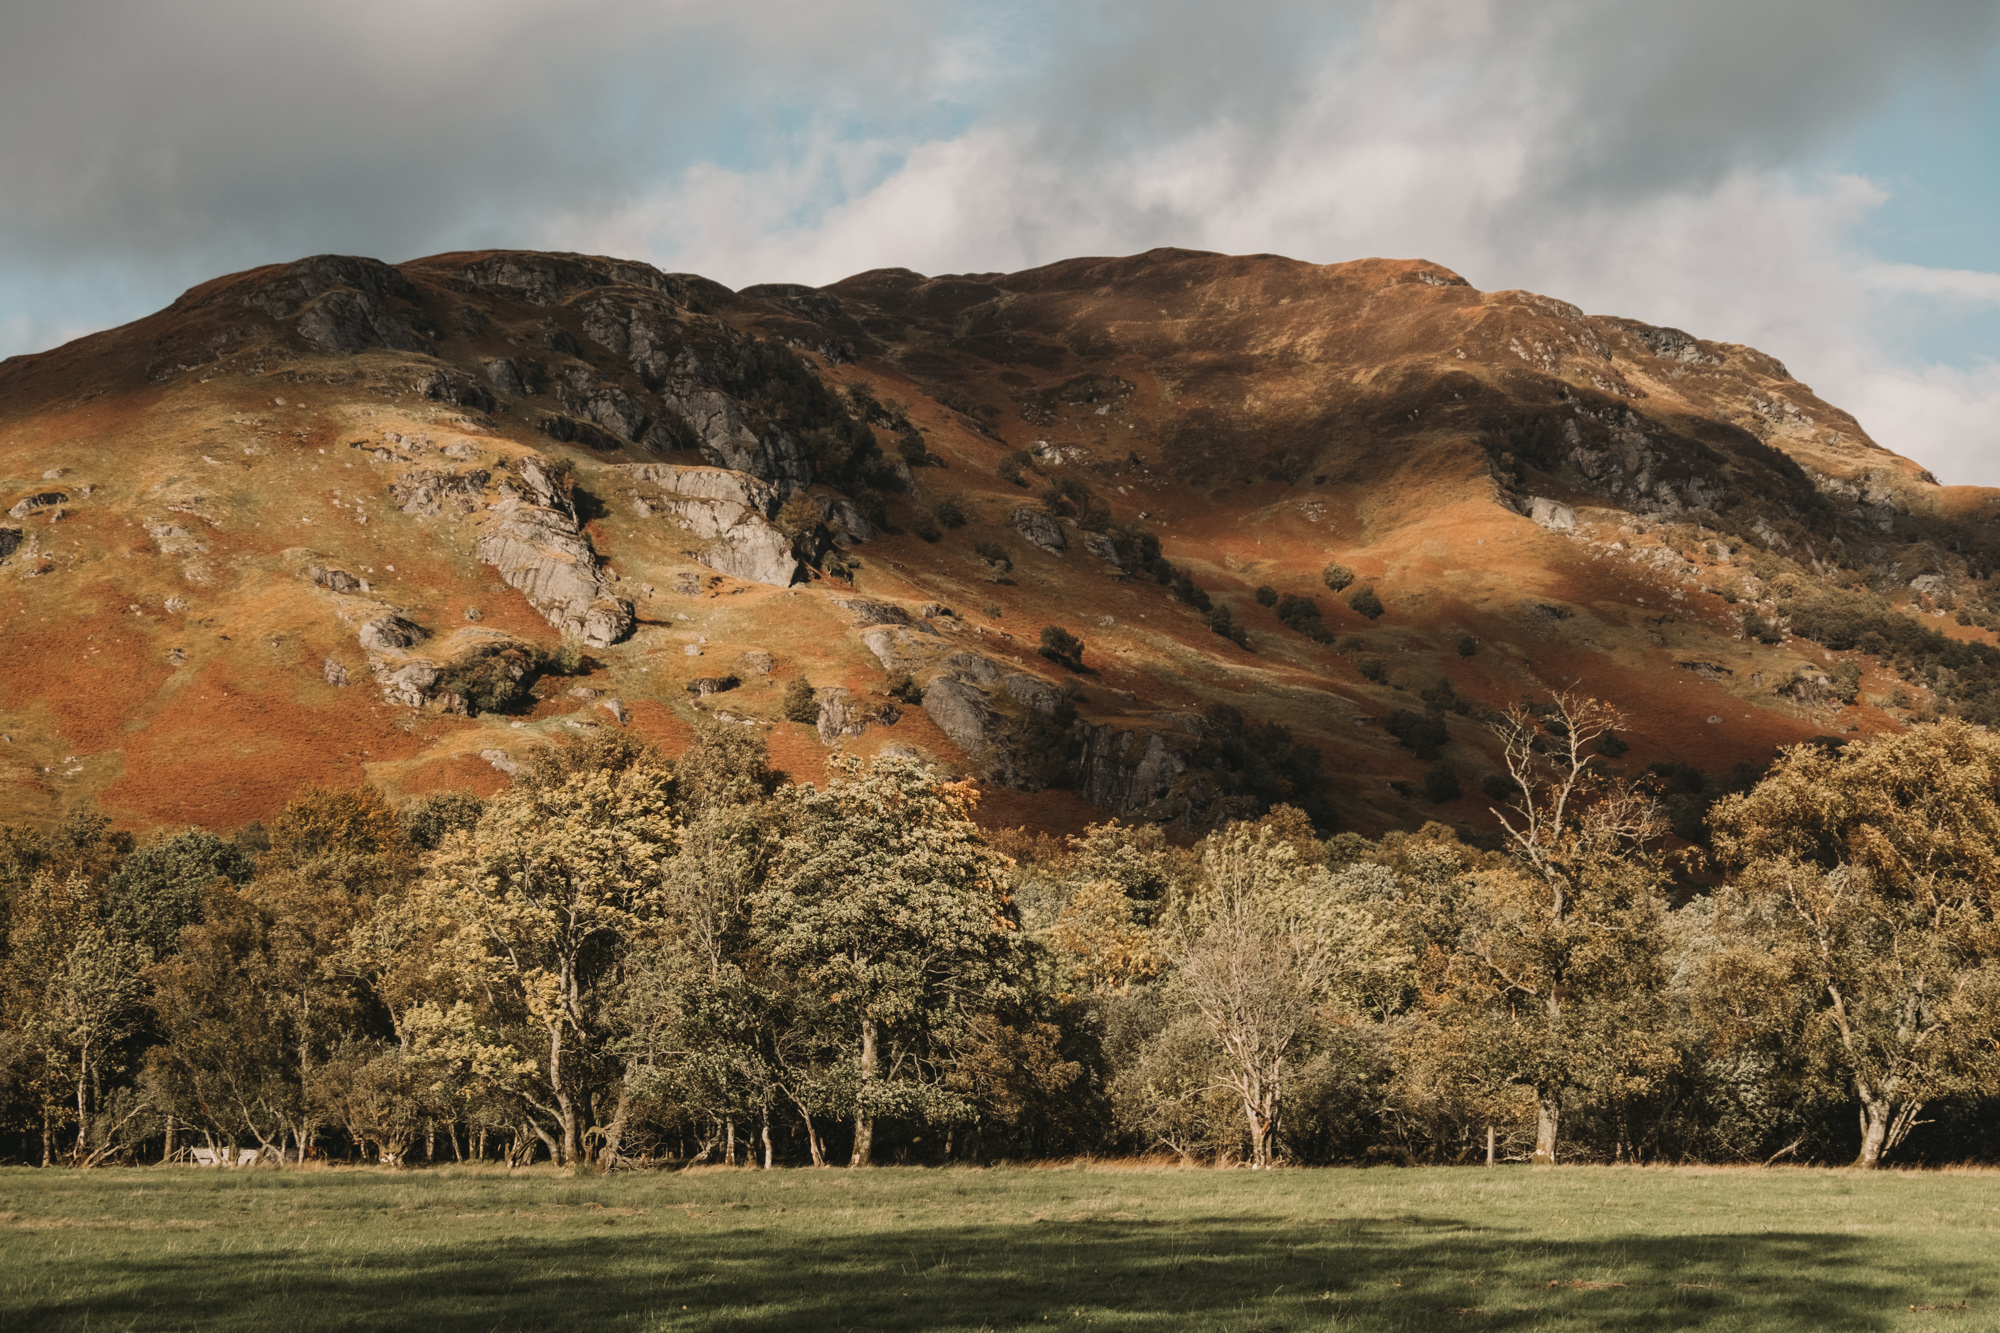 The installation is located in the scenic location of Loch Lomond and Trossachs National Park